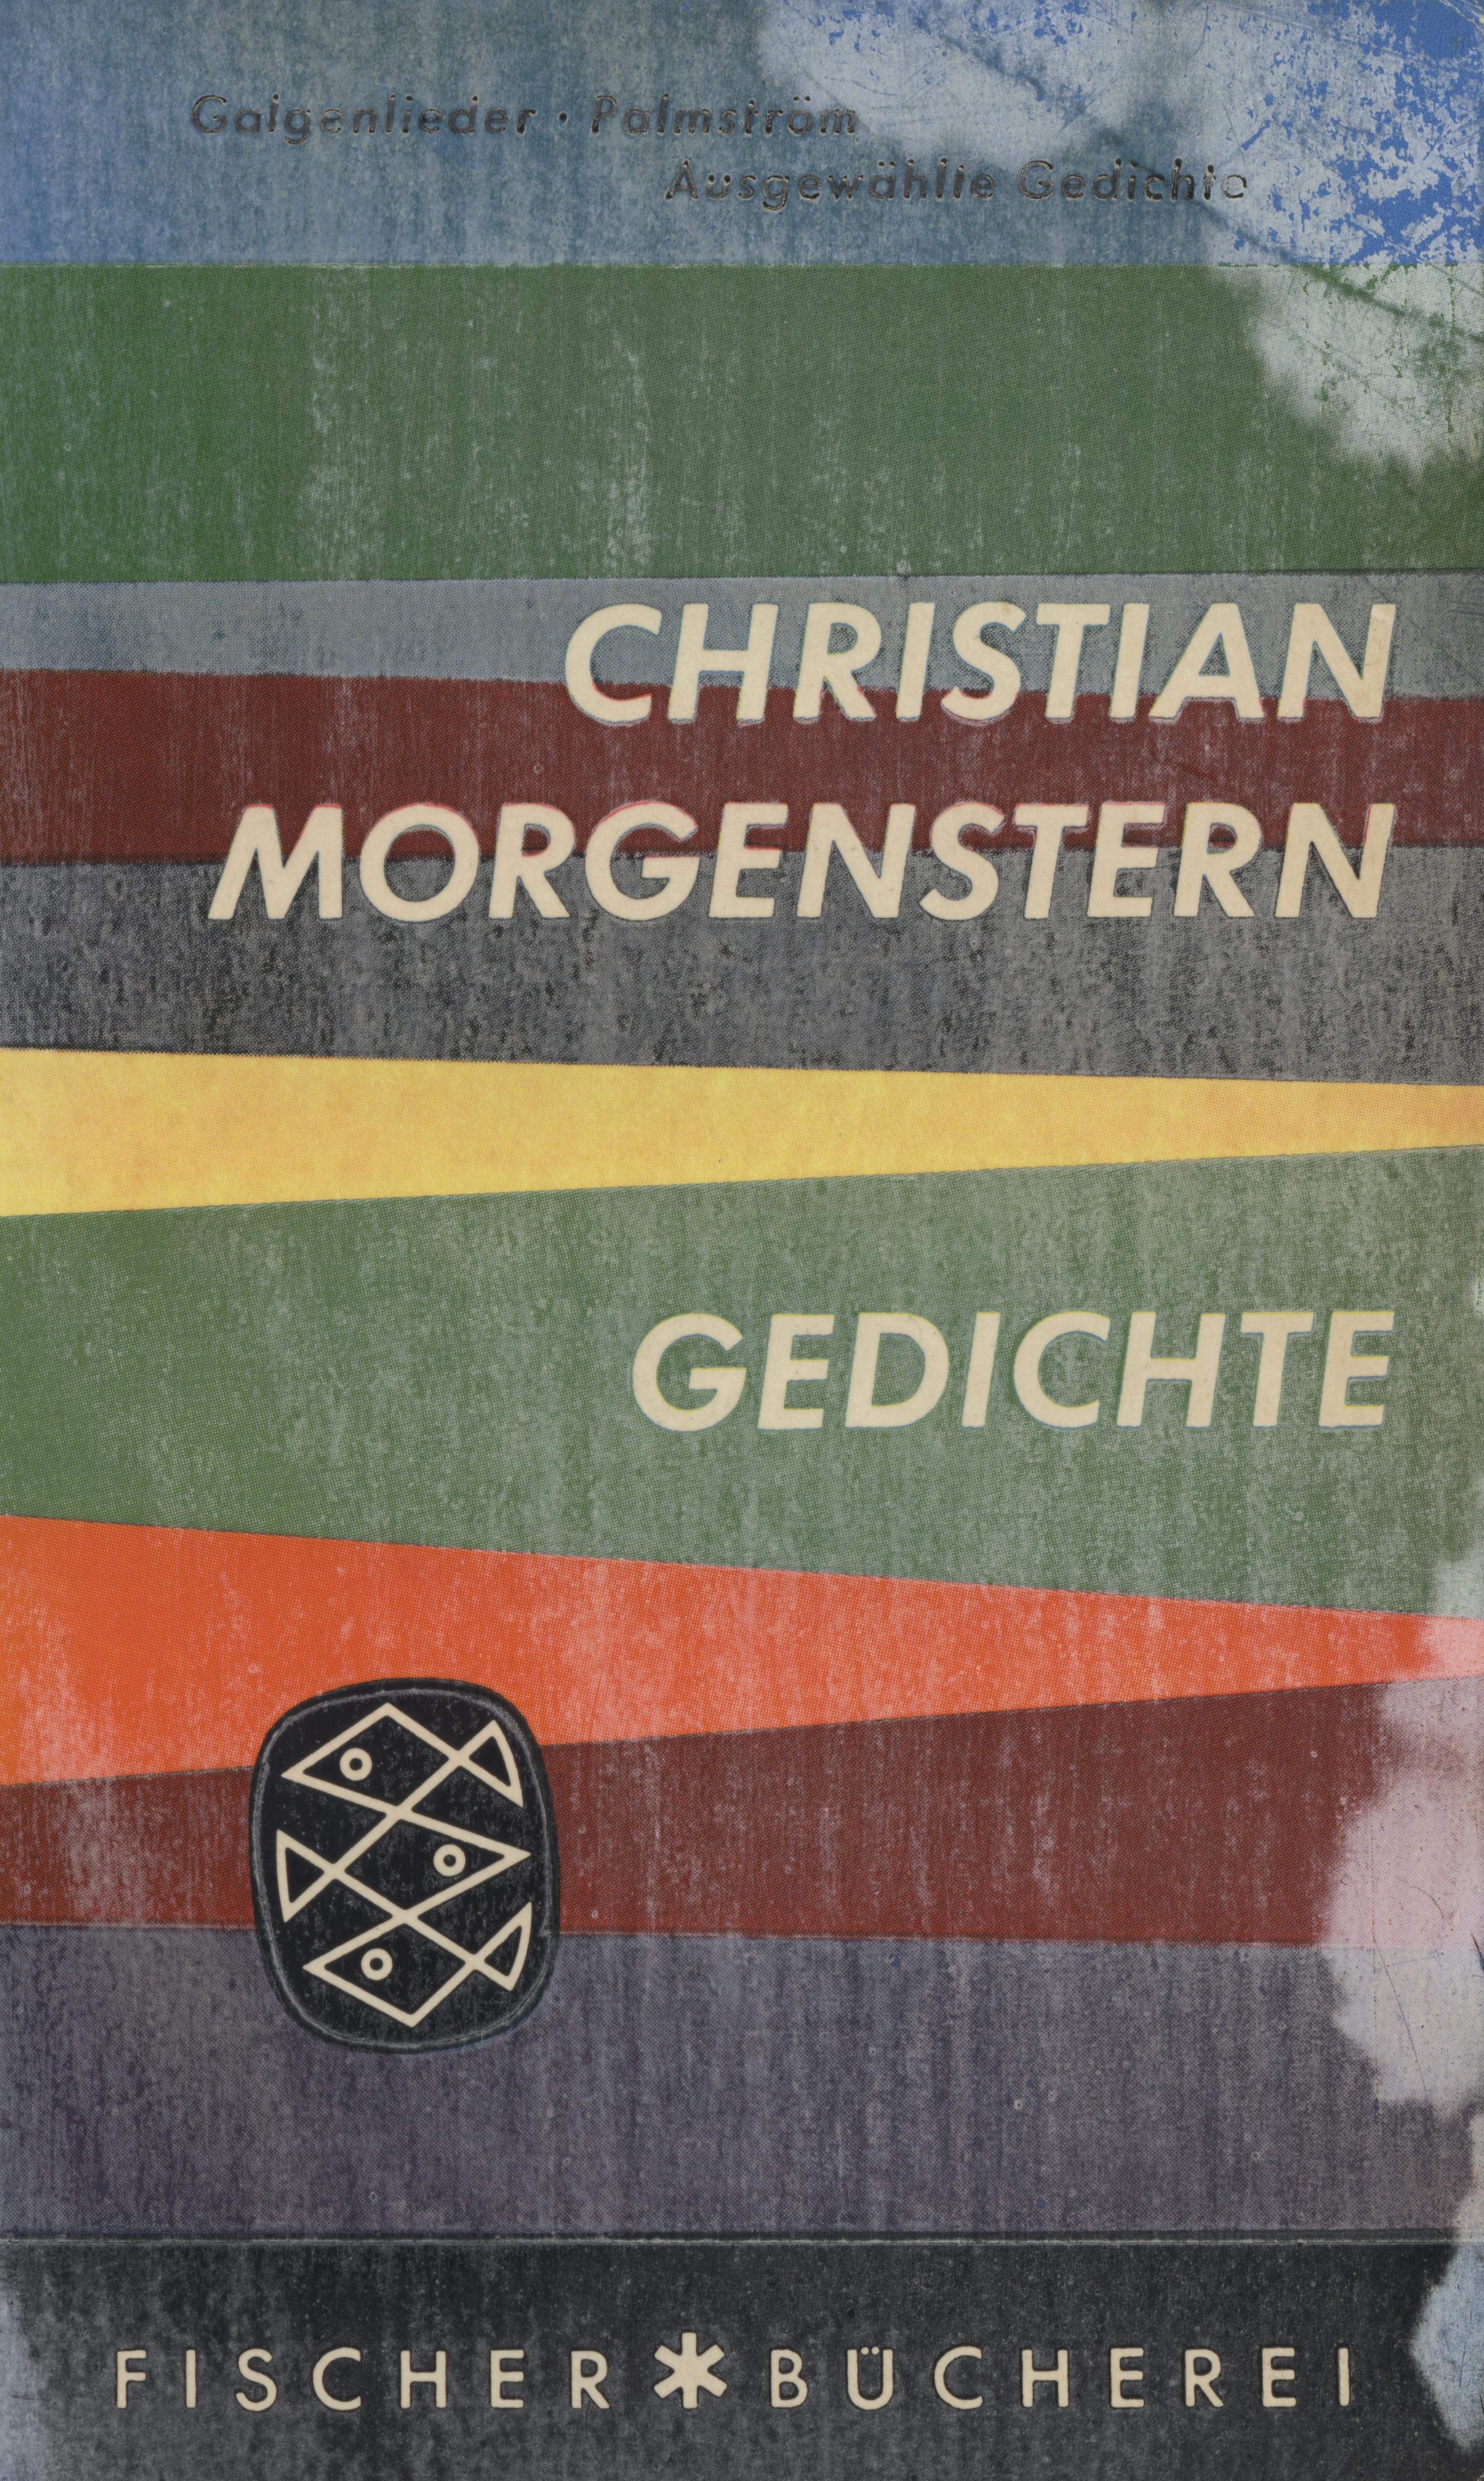 Gedichte By Christian Morgenstern Fonts In Use